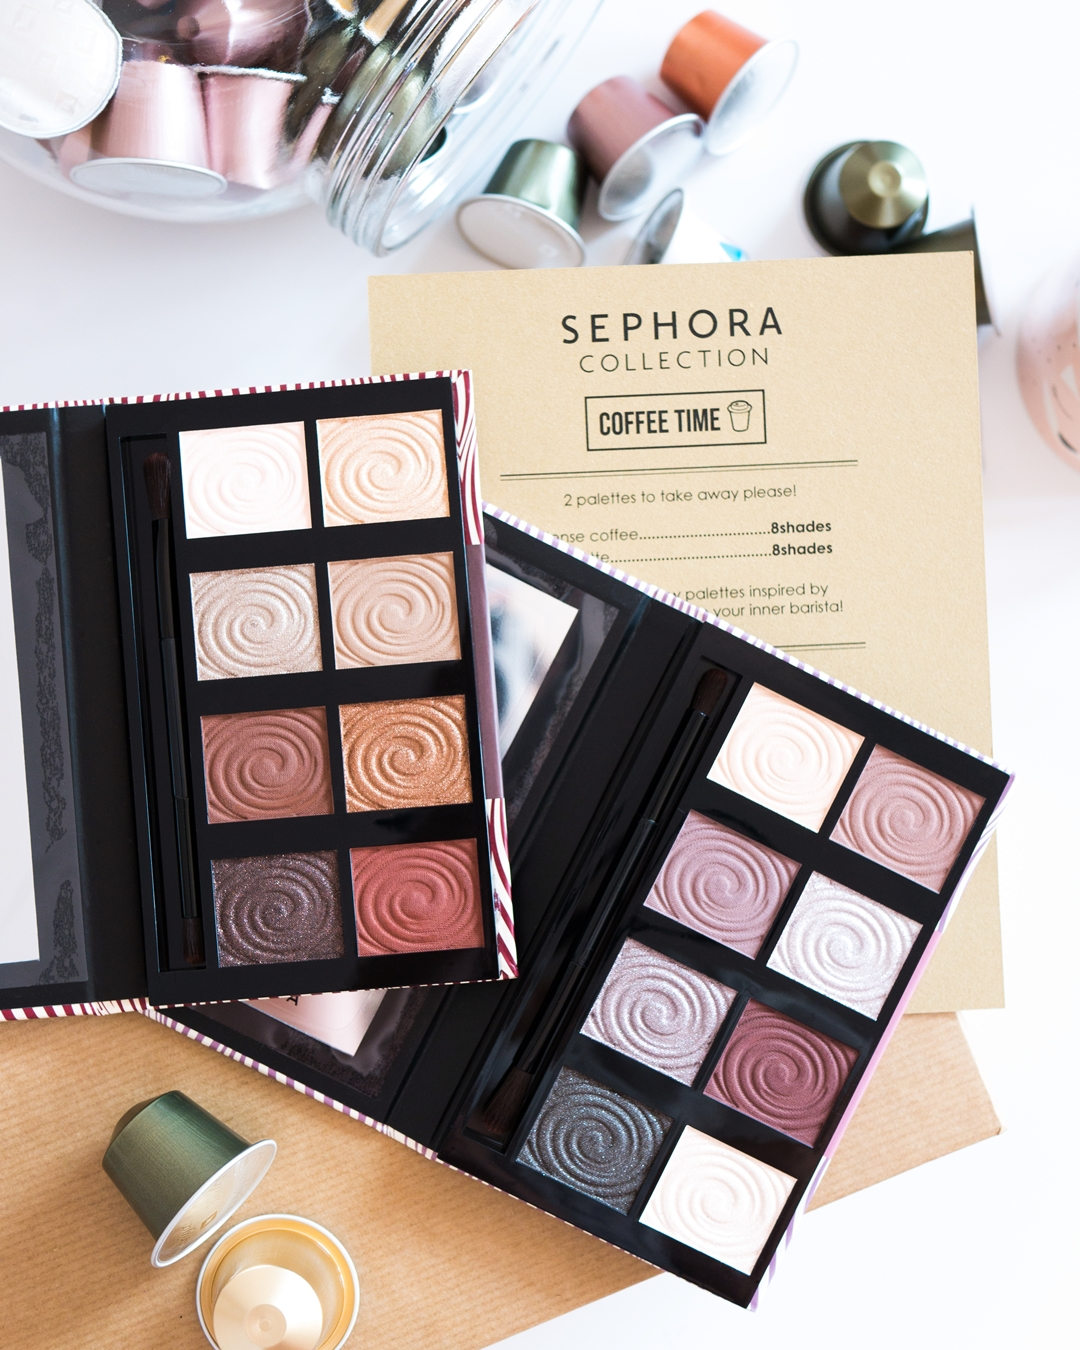 Sephora Palette To take away Intense coffee collection, Spicy latte collection